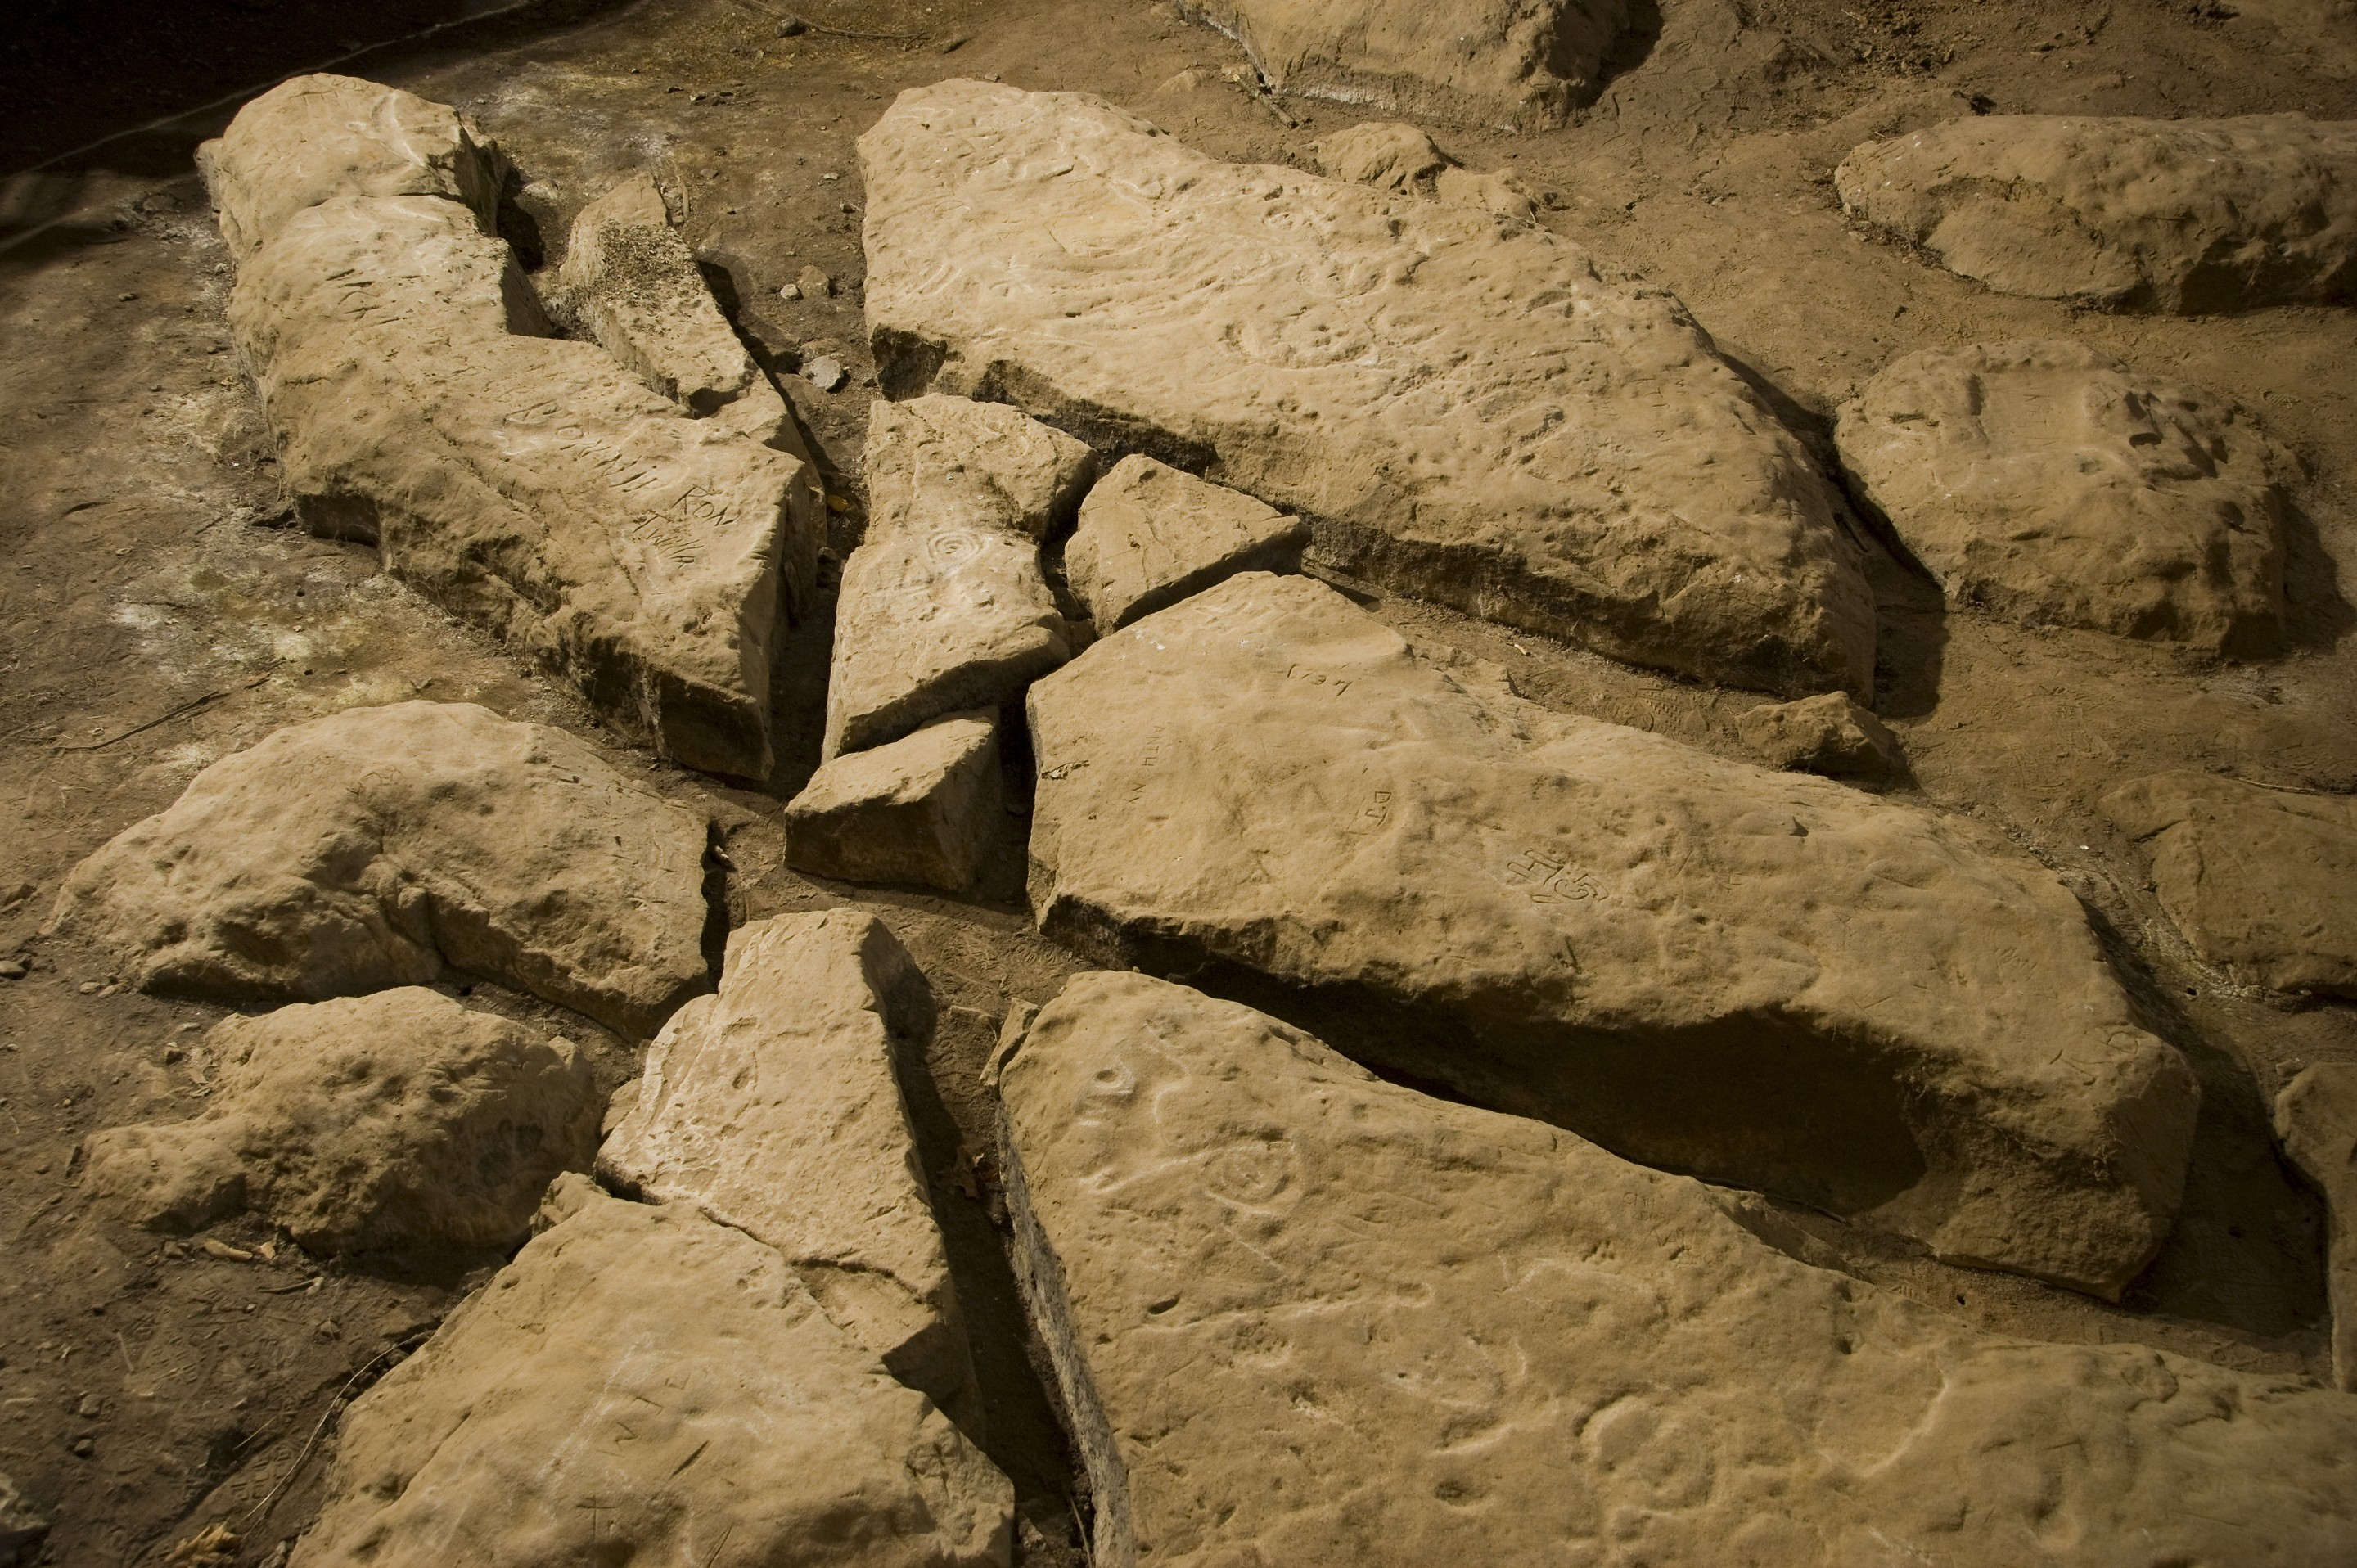 Explore Native American rock carvings at Thousand Hills State Park